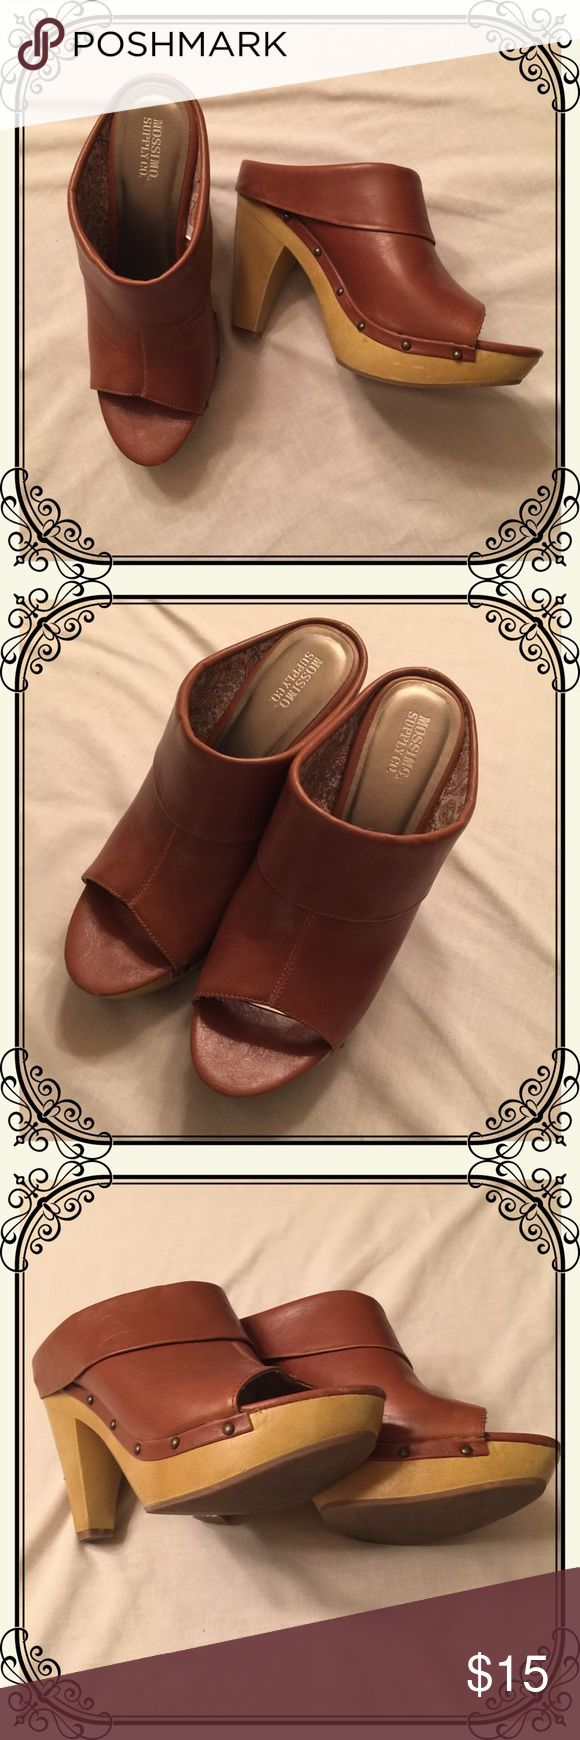 Brown high heel mule wedge clogs Stylish high heeled brown mule wedge clogs. Very gently worn, excellent condition. Great with jeans or boho looks! Mossimo Supply Co. Shoes Mules & Clogs